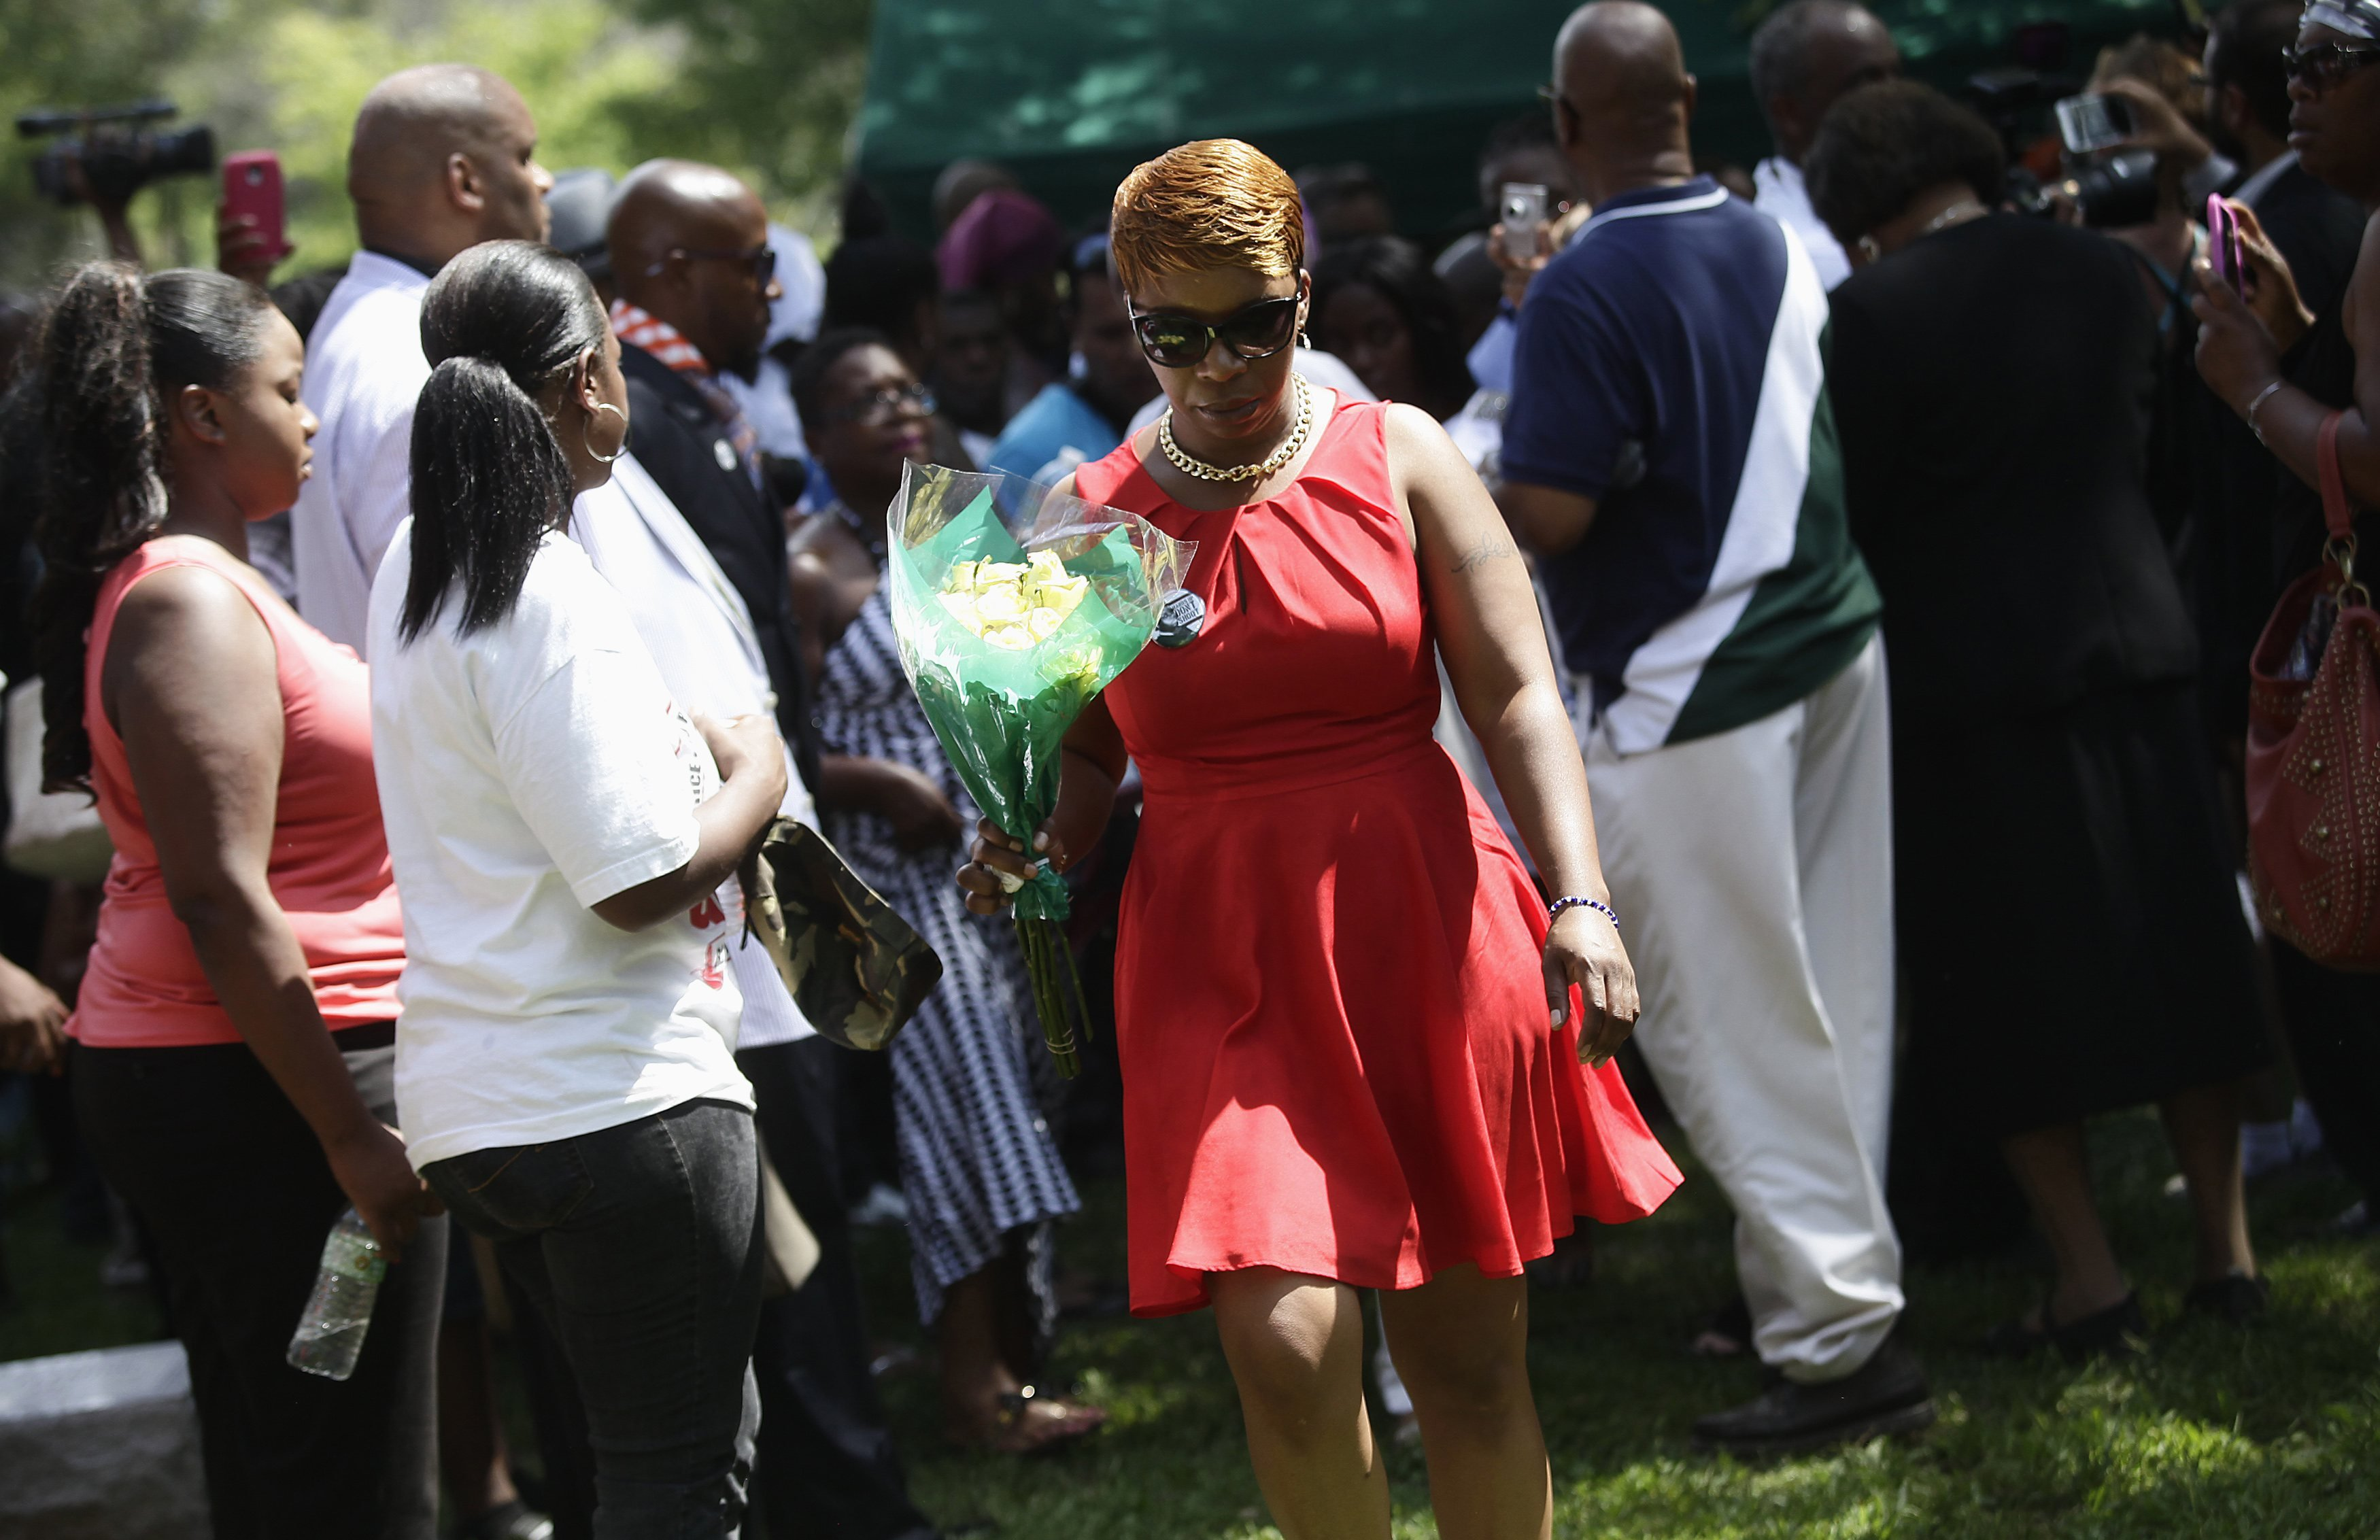 Lesley McSpadden (C) leaves the burial service for her son Michael Brown with a bouquet of flowers at St. Peter's Cemetery in St. Louis, on Aug. 25, 2014.